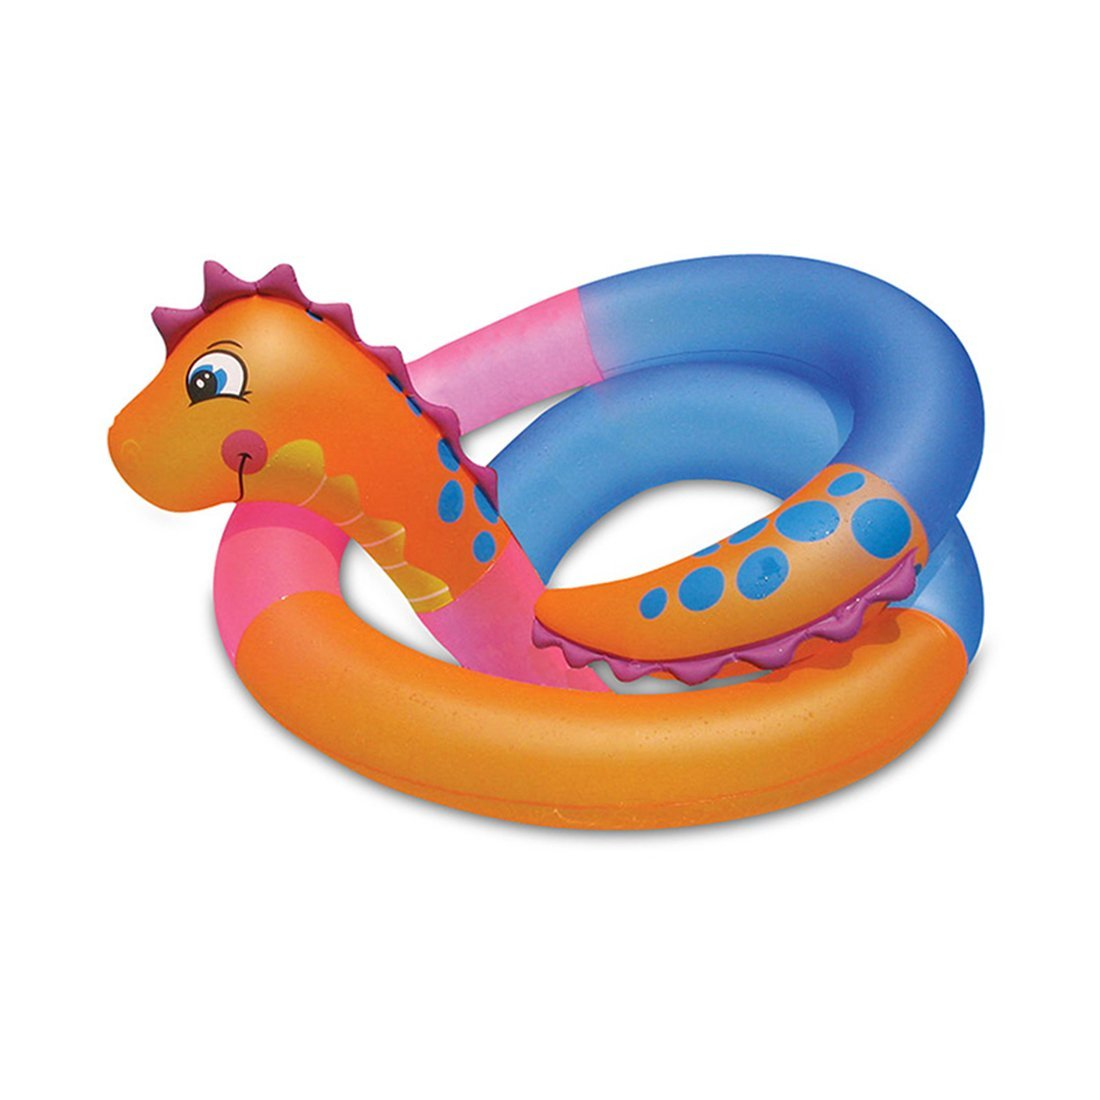 DMGF Inflatable Pool Float Swimming Ring Raft Tube Kids Summer Water Sport Fun Toy Giant Snake Floats With Rapid Valves 792Cm